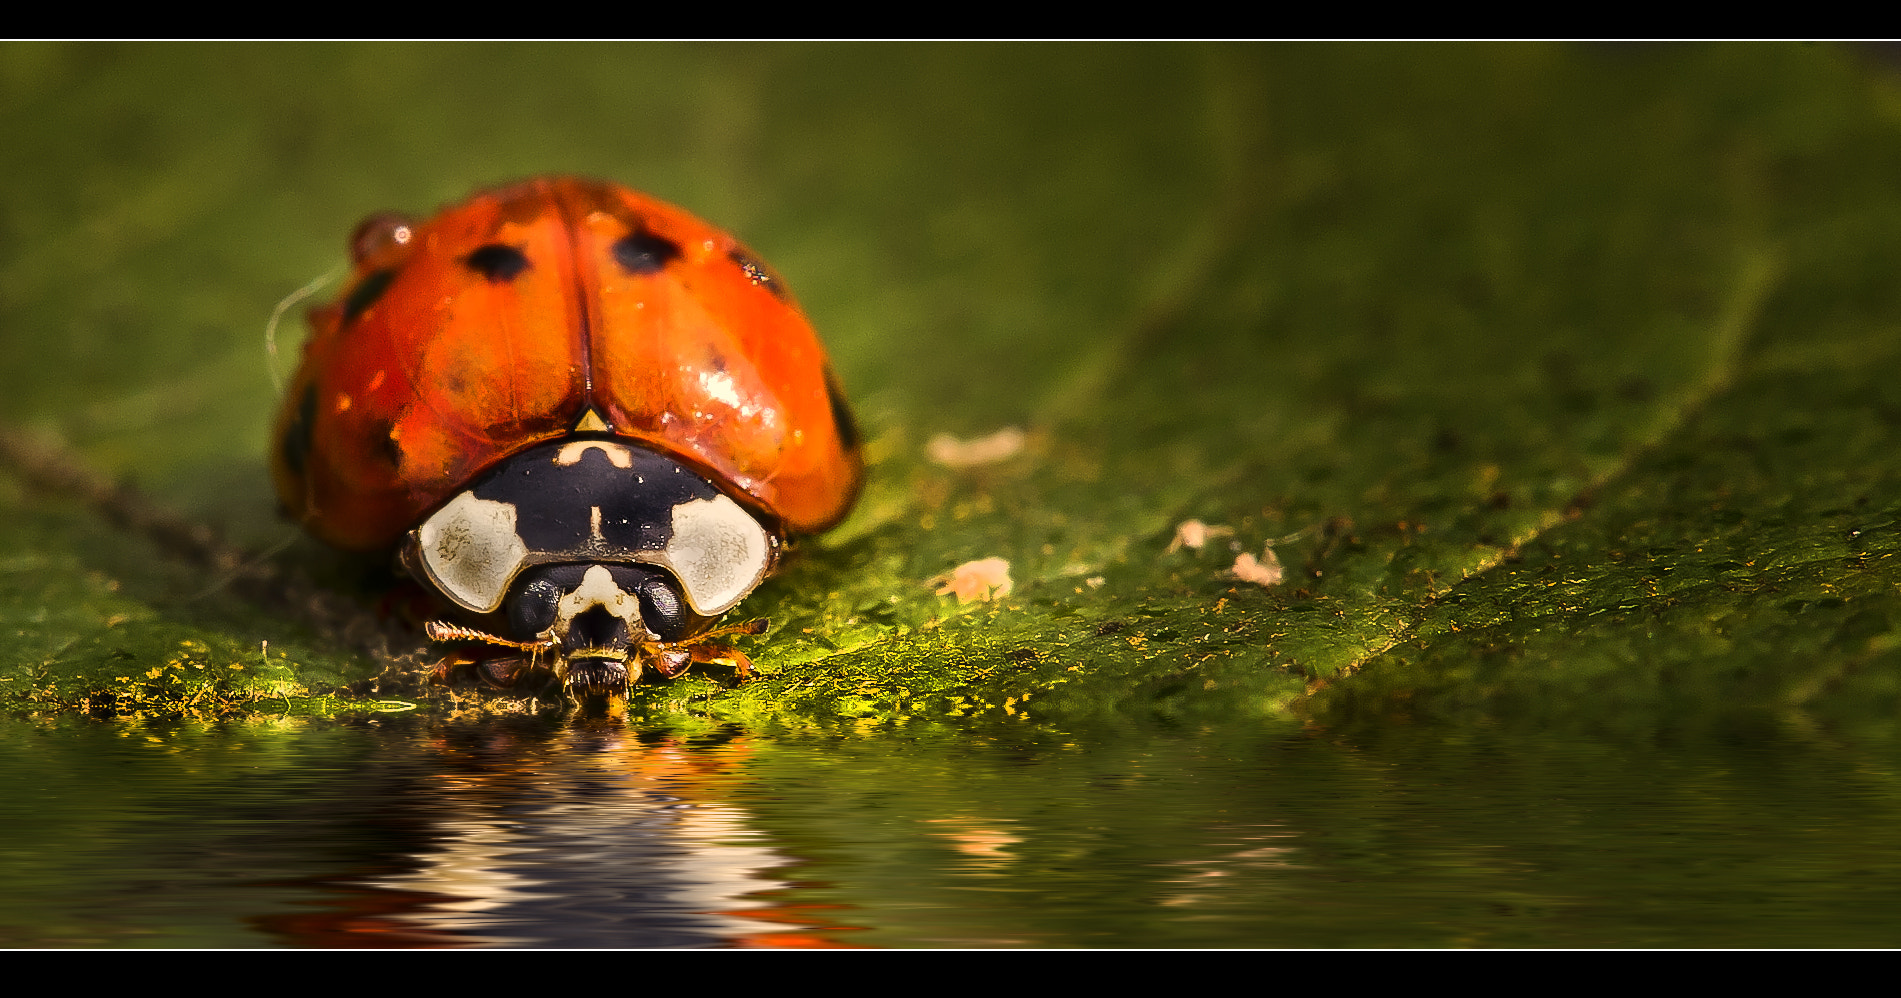 Photograph thirst by Detlef Knapp on 500px